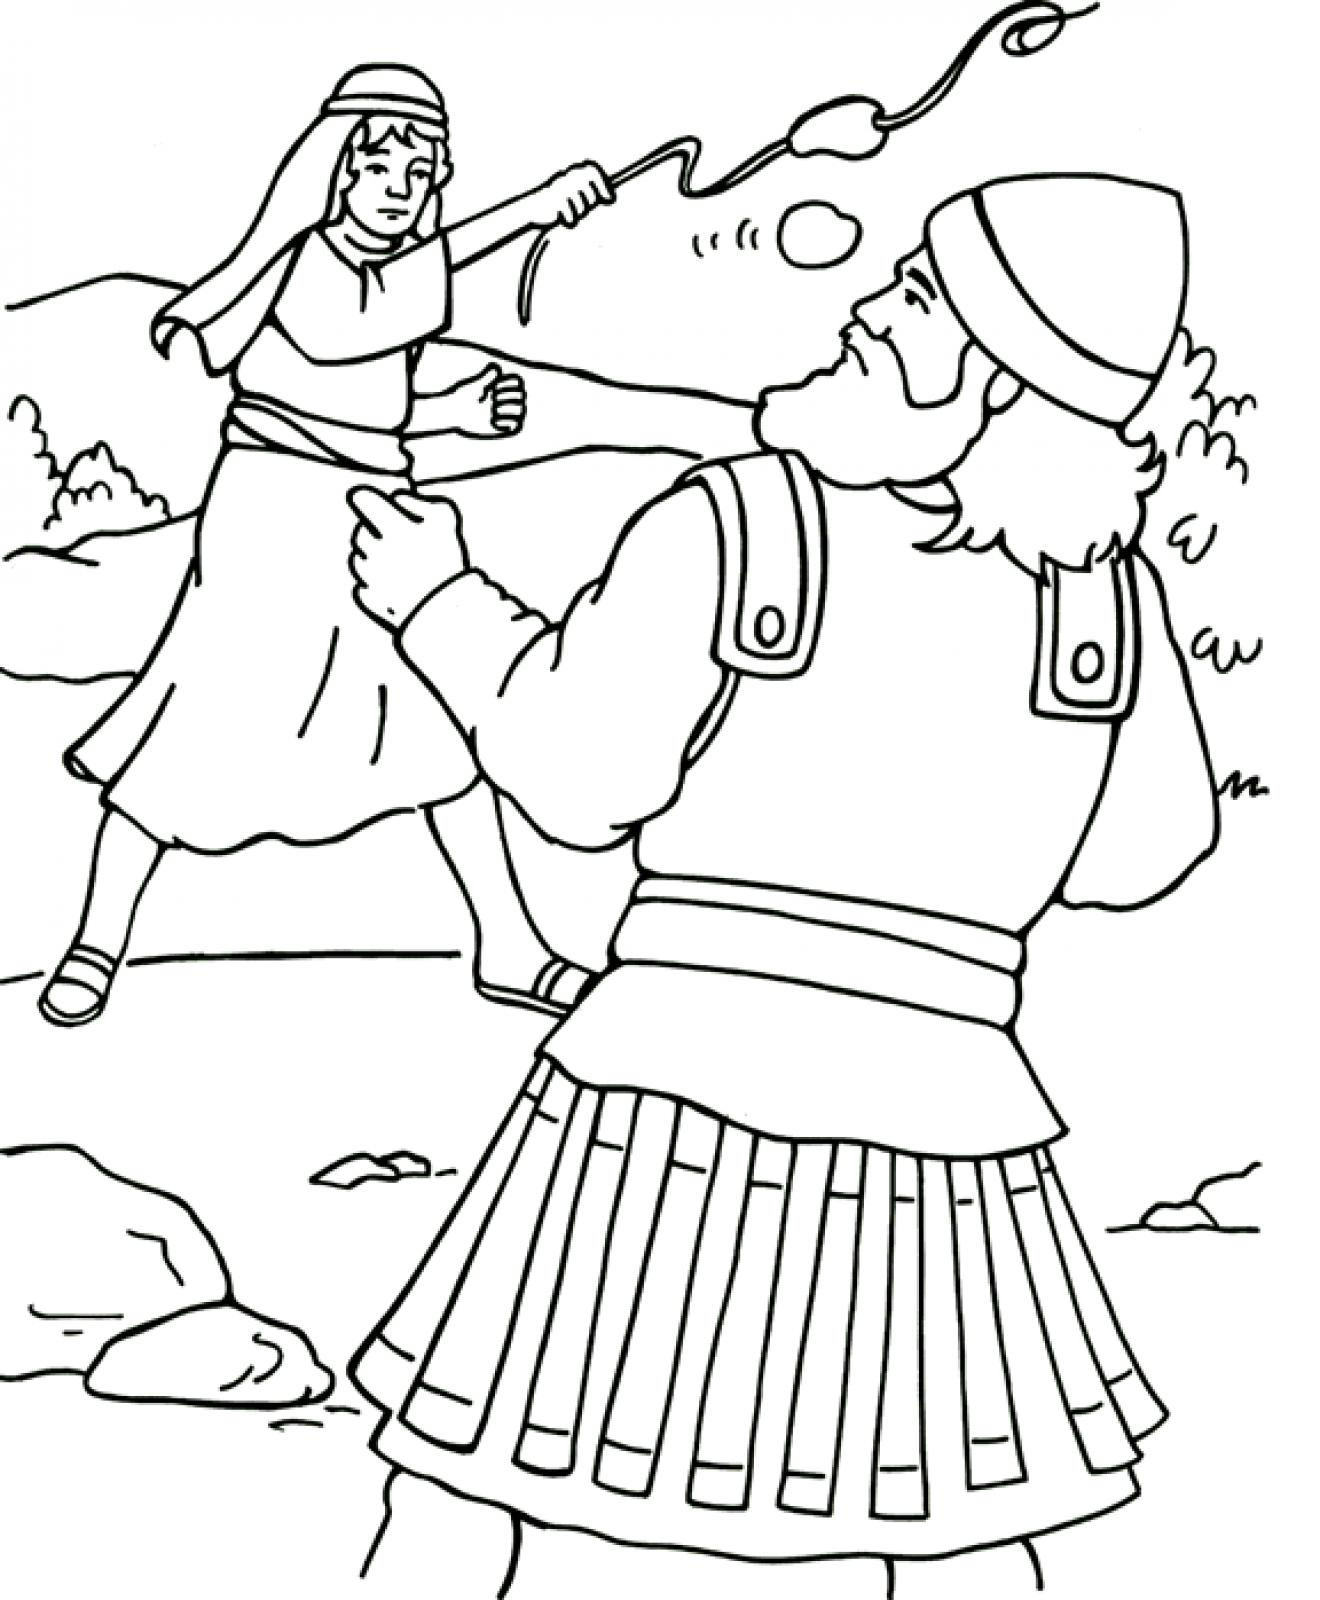 image about David and Goliath Printable Story named David And Goliath Drawing at  No cost for